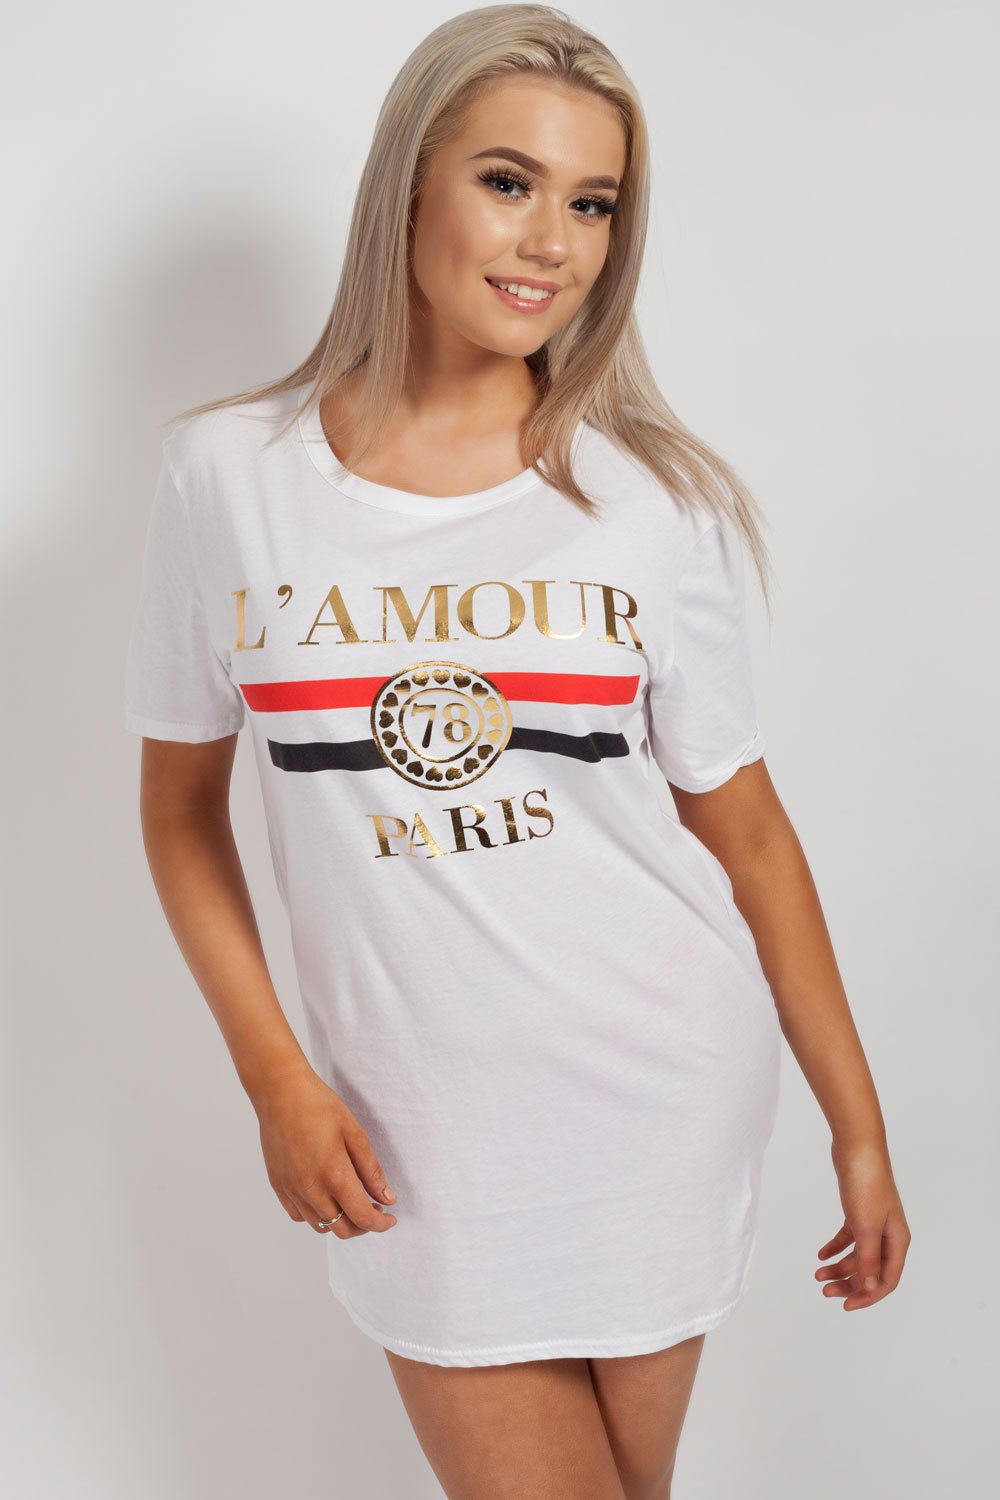 lamour paris top white